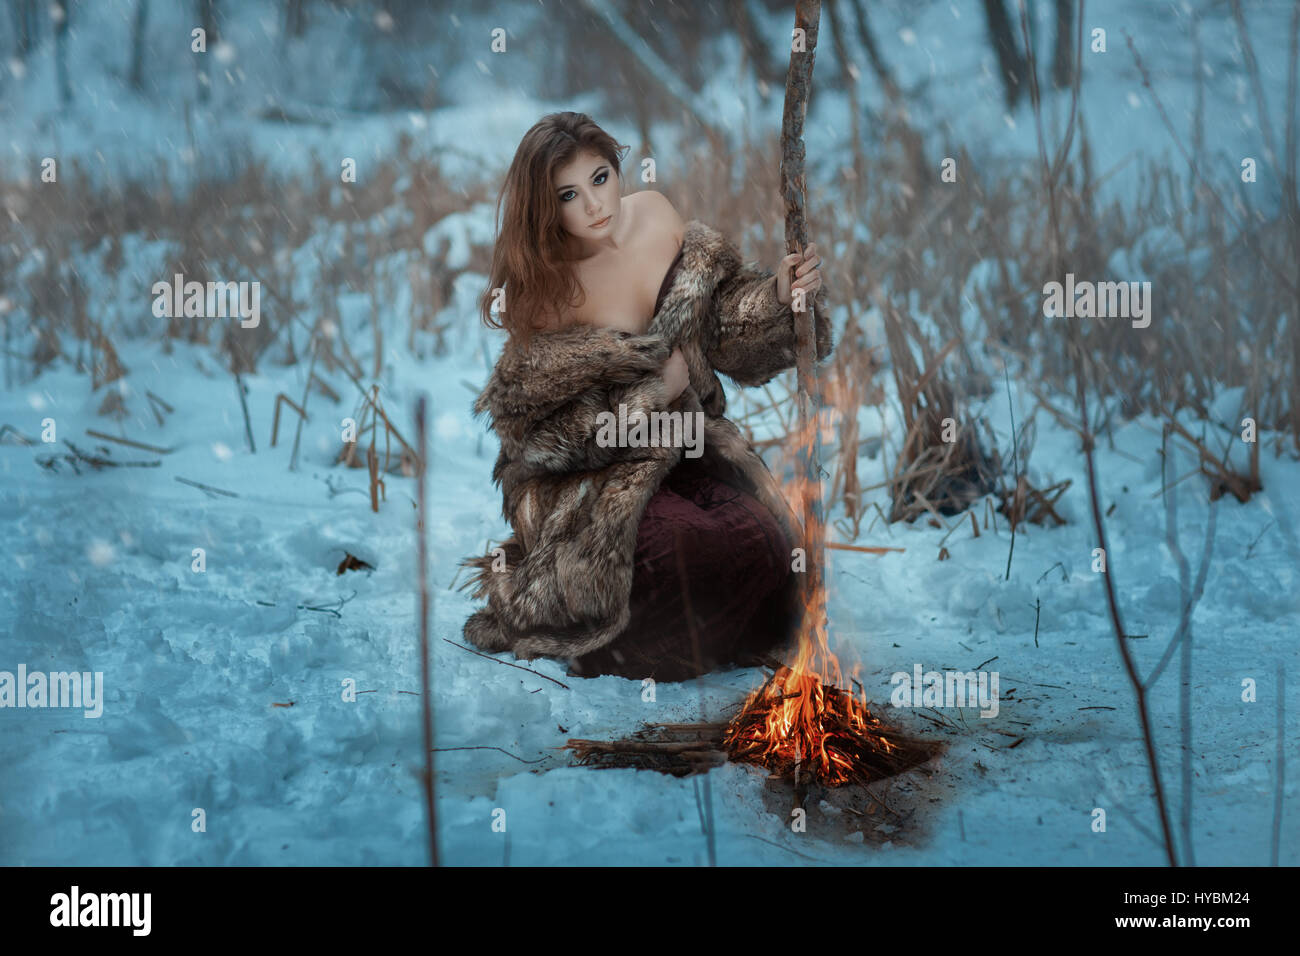 Girl shaman is heated by the fire in winter in the forest. Blizzard sweeps, and it is snowing. - Stock Image